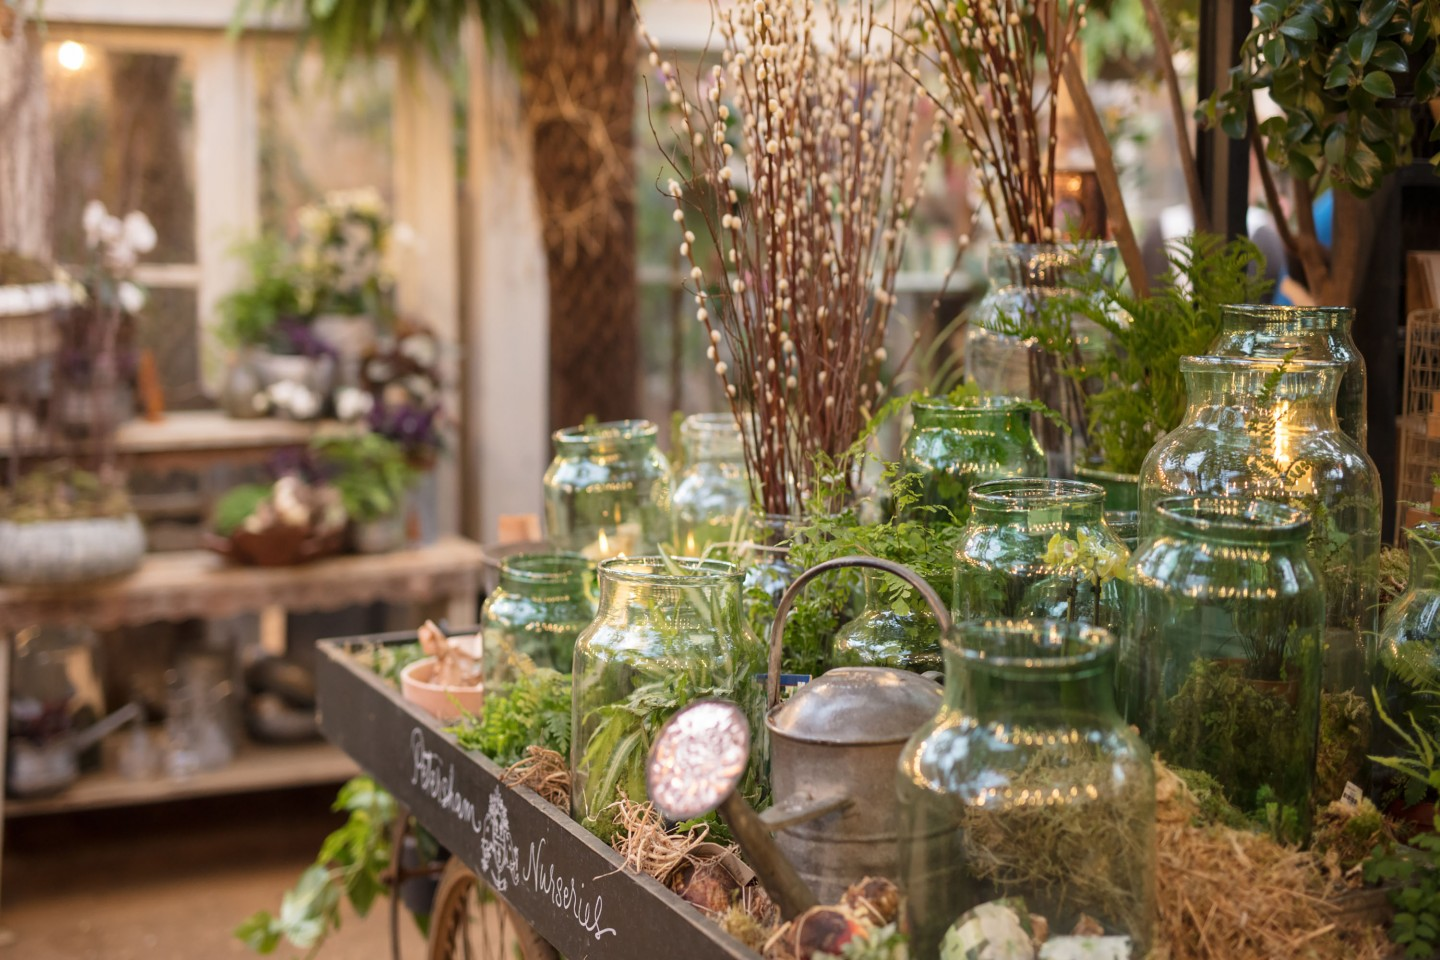 7 Things to do at Petersham Nurseries Petersham Nurseries Richmond #PetershamNurseries #Garden #GardenTools #GardenSupplies #Gardening #HomeDecor #GardenDecor #London #CoventGarden